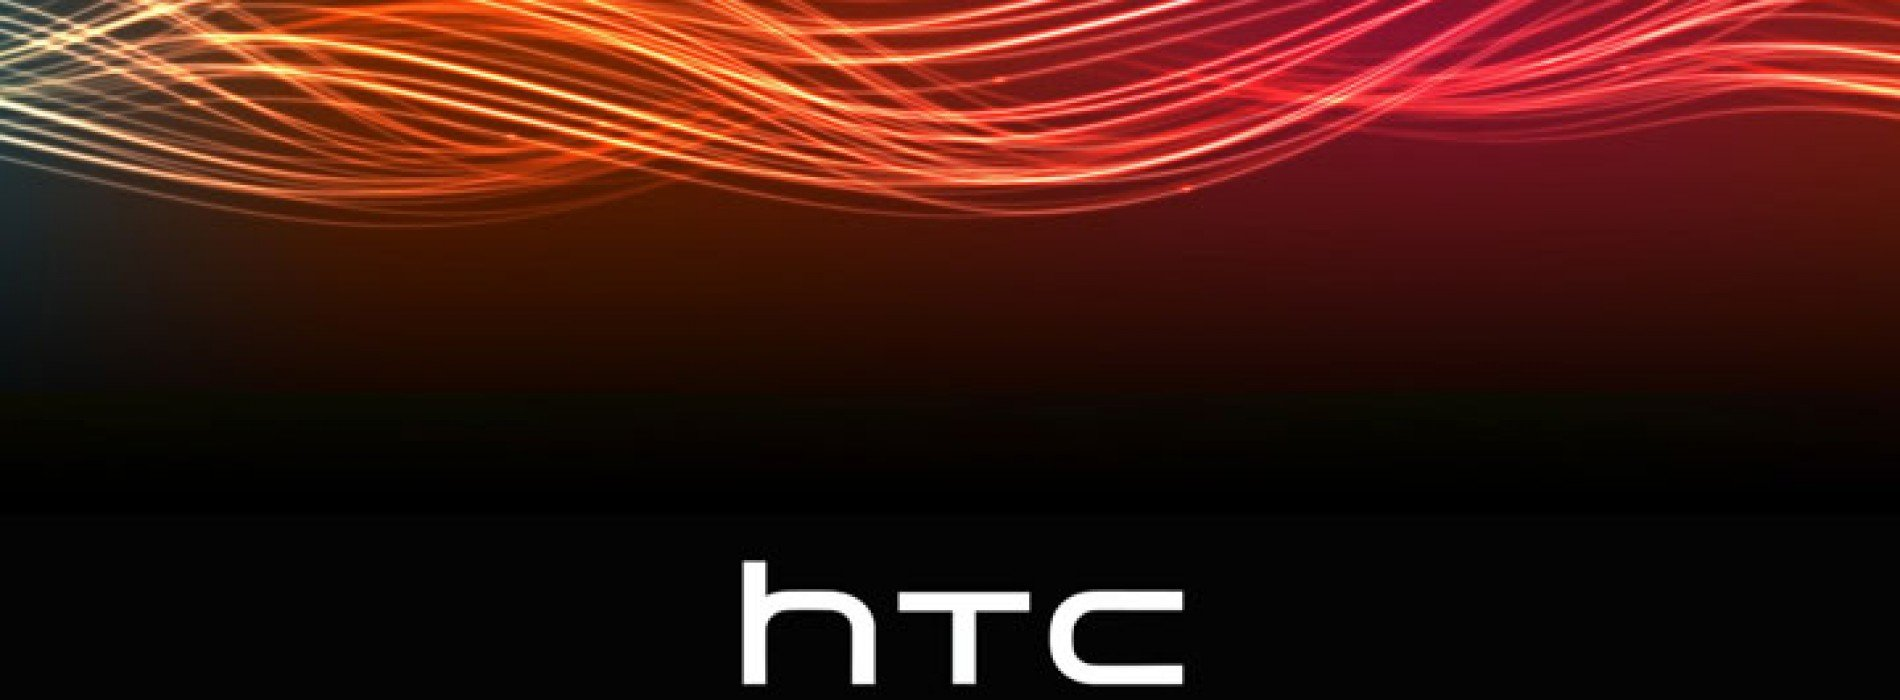 Last minute rumor suggests HTC M7 may show up at CES